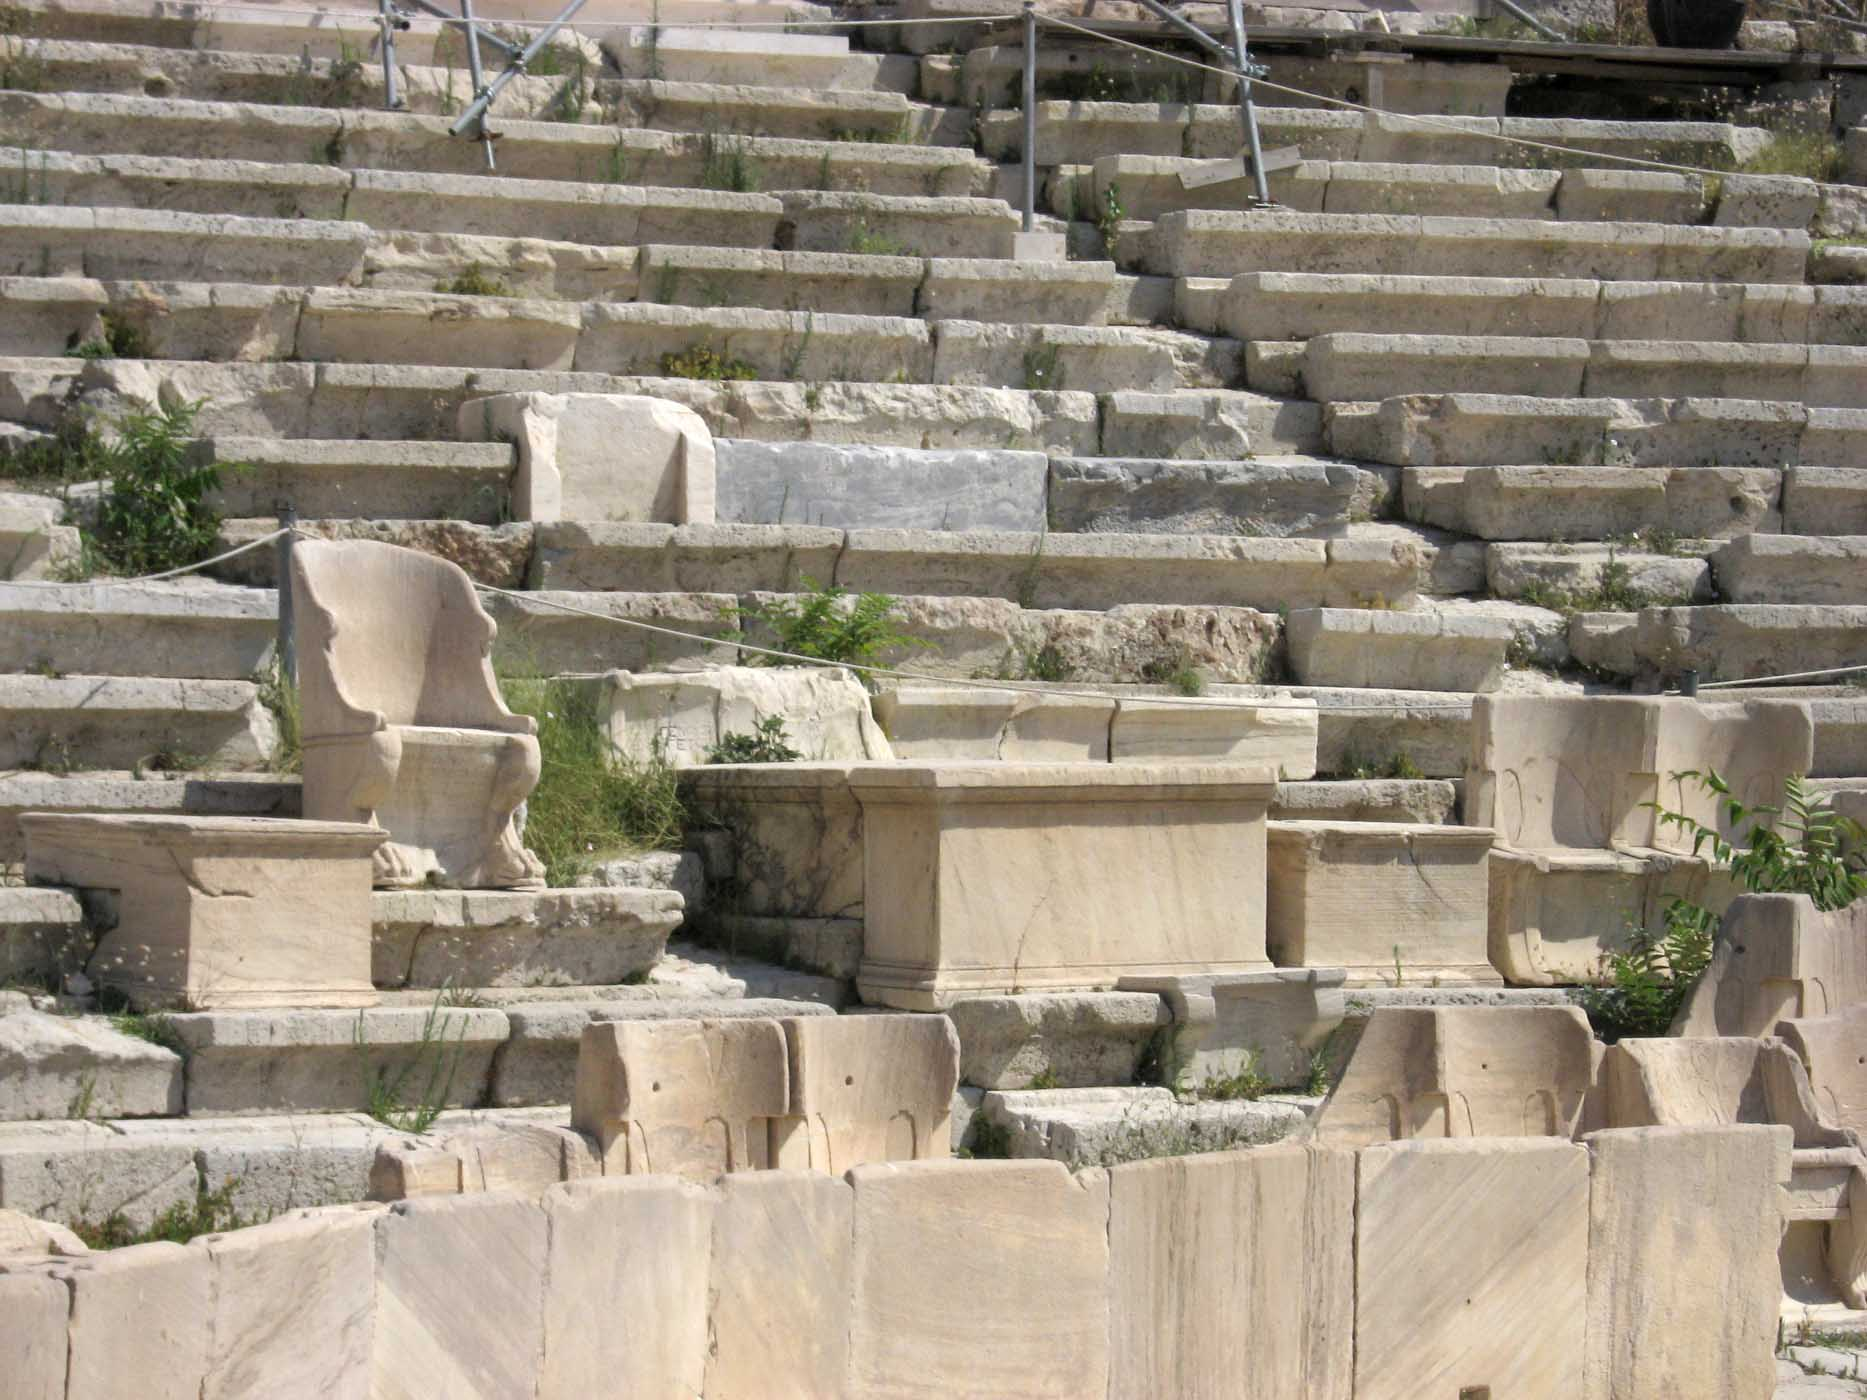 Theater of Dionysos